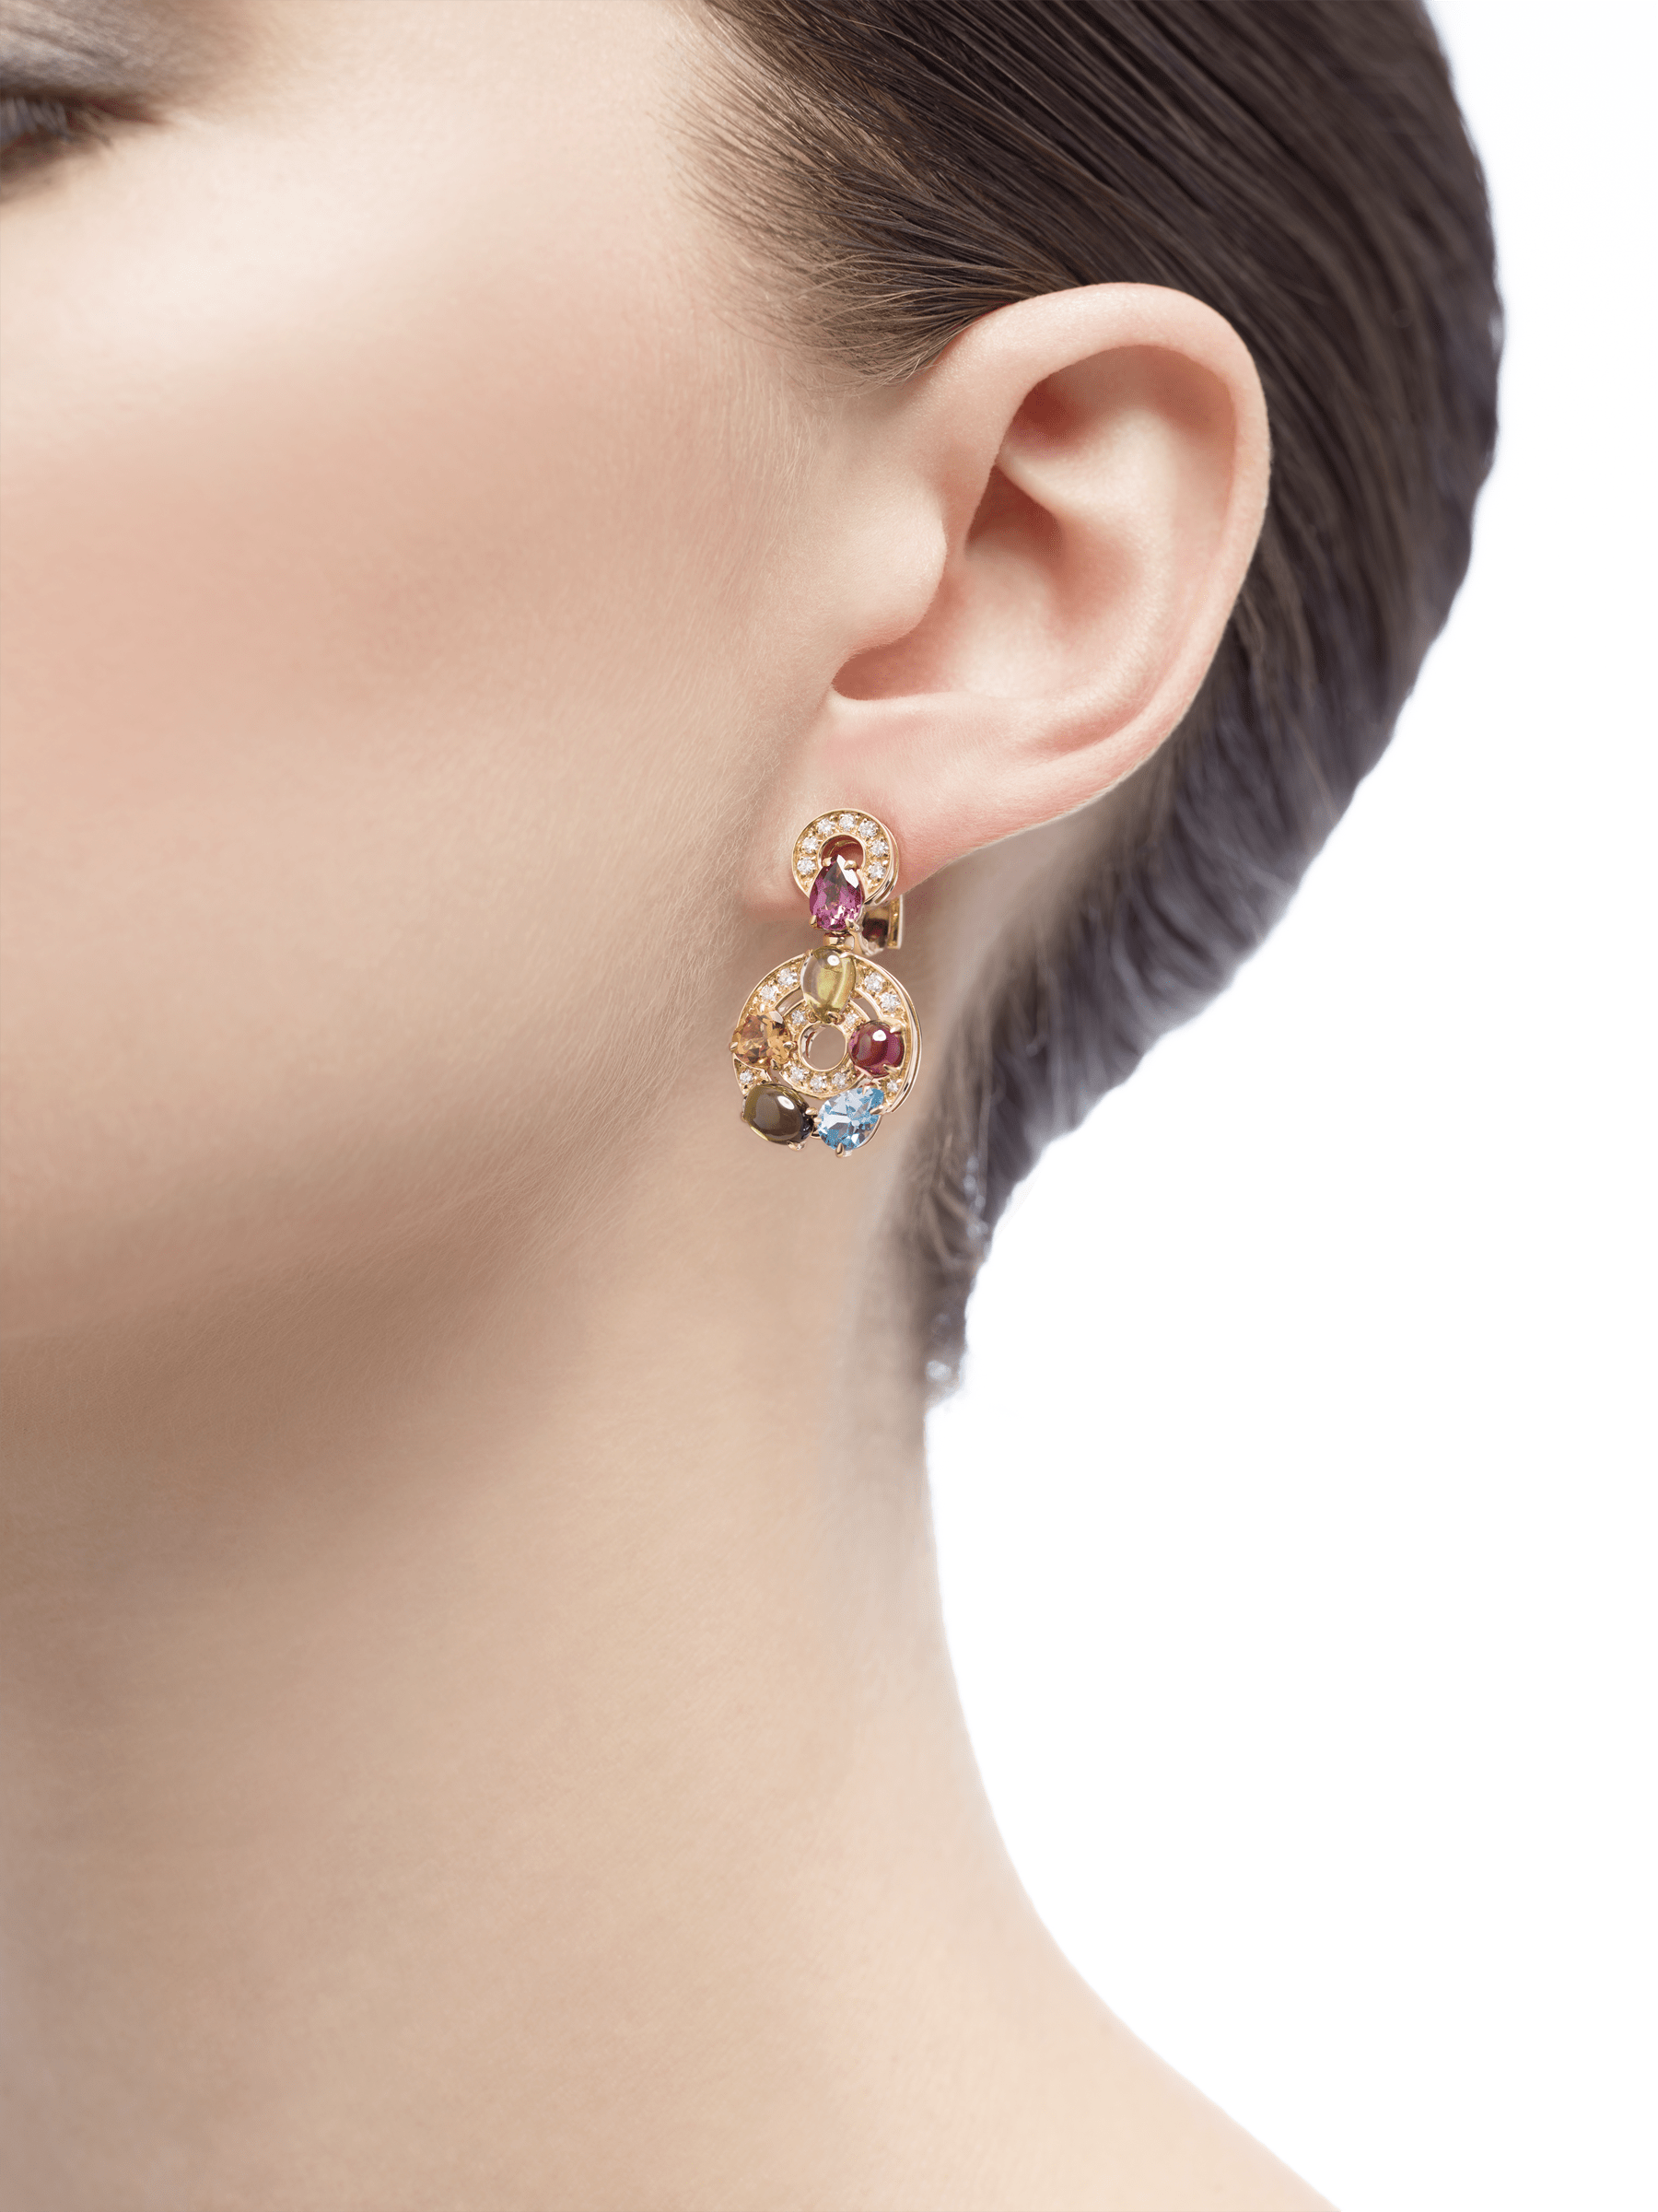 Astrale 18kt yellow gold earrings set with blue topazes, green tourmalines, peridots, citrine quartz, rhodolite garnets and pavé diamonds 339141 image 4